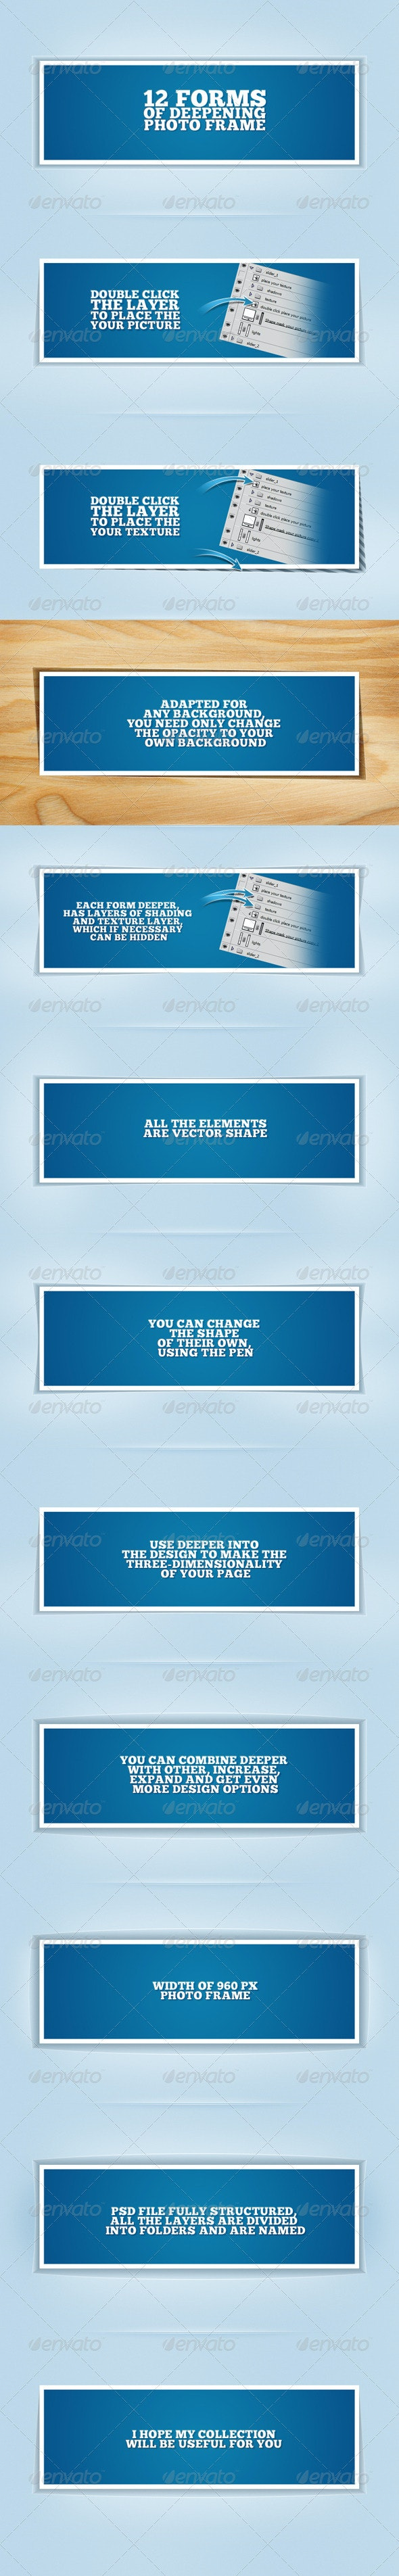 12 forms deepening photo frame - Miscellaneous Web Elements